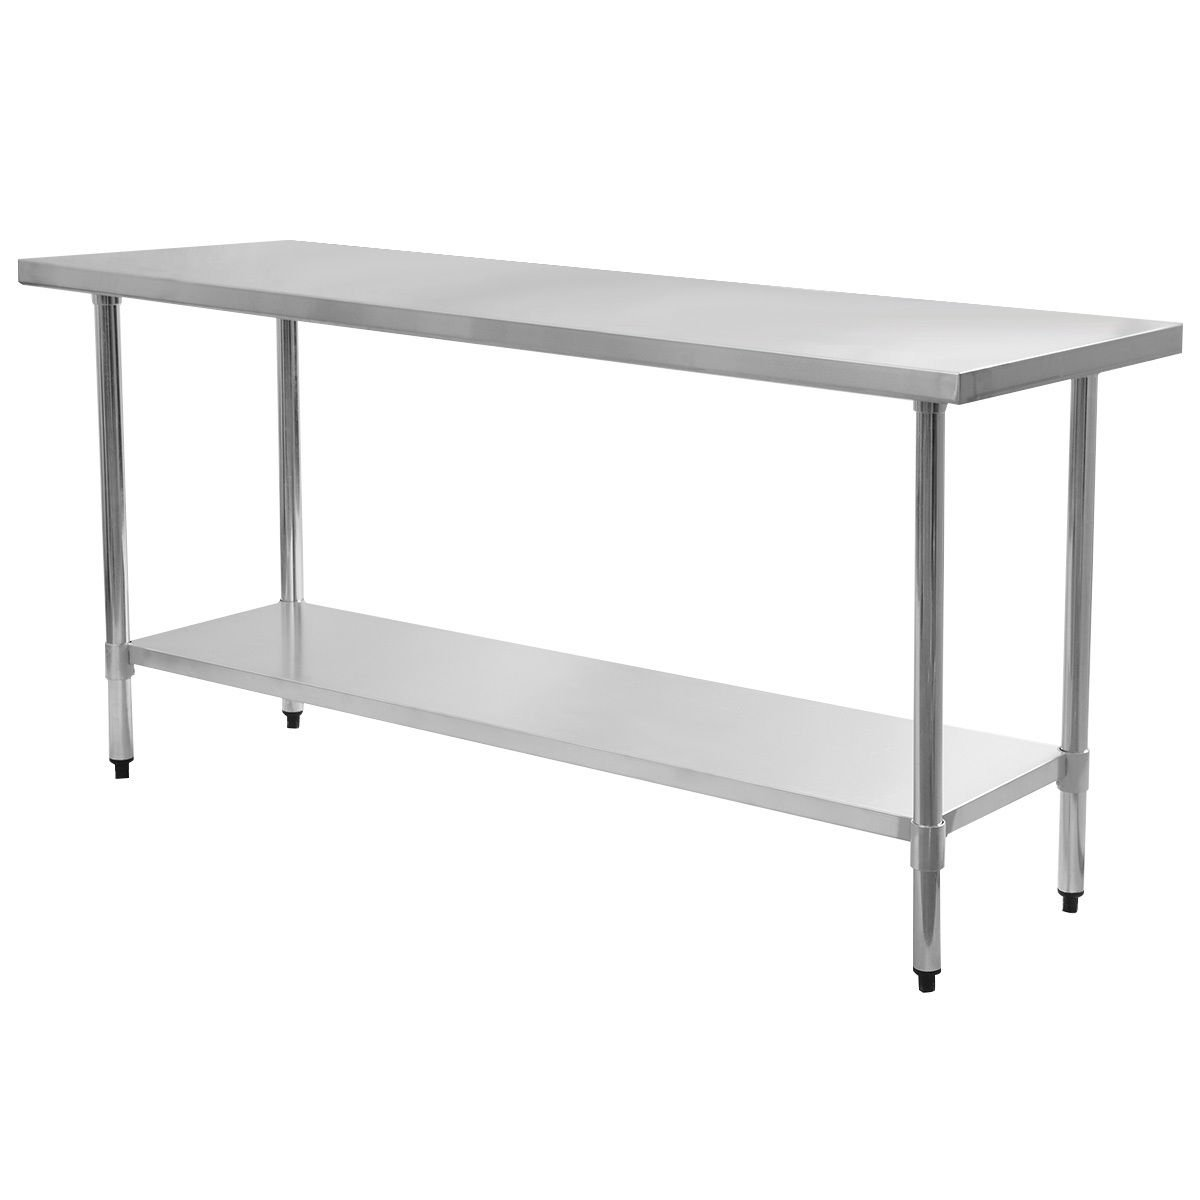 And Heavy Duty Durability Easy Cleaning 24'' x 72'' Stainless Steel Work Prep Table Commercial Kitchen Restaurant Bars Cafeterias Garage And Your Home